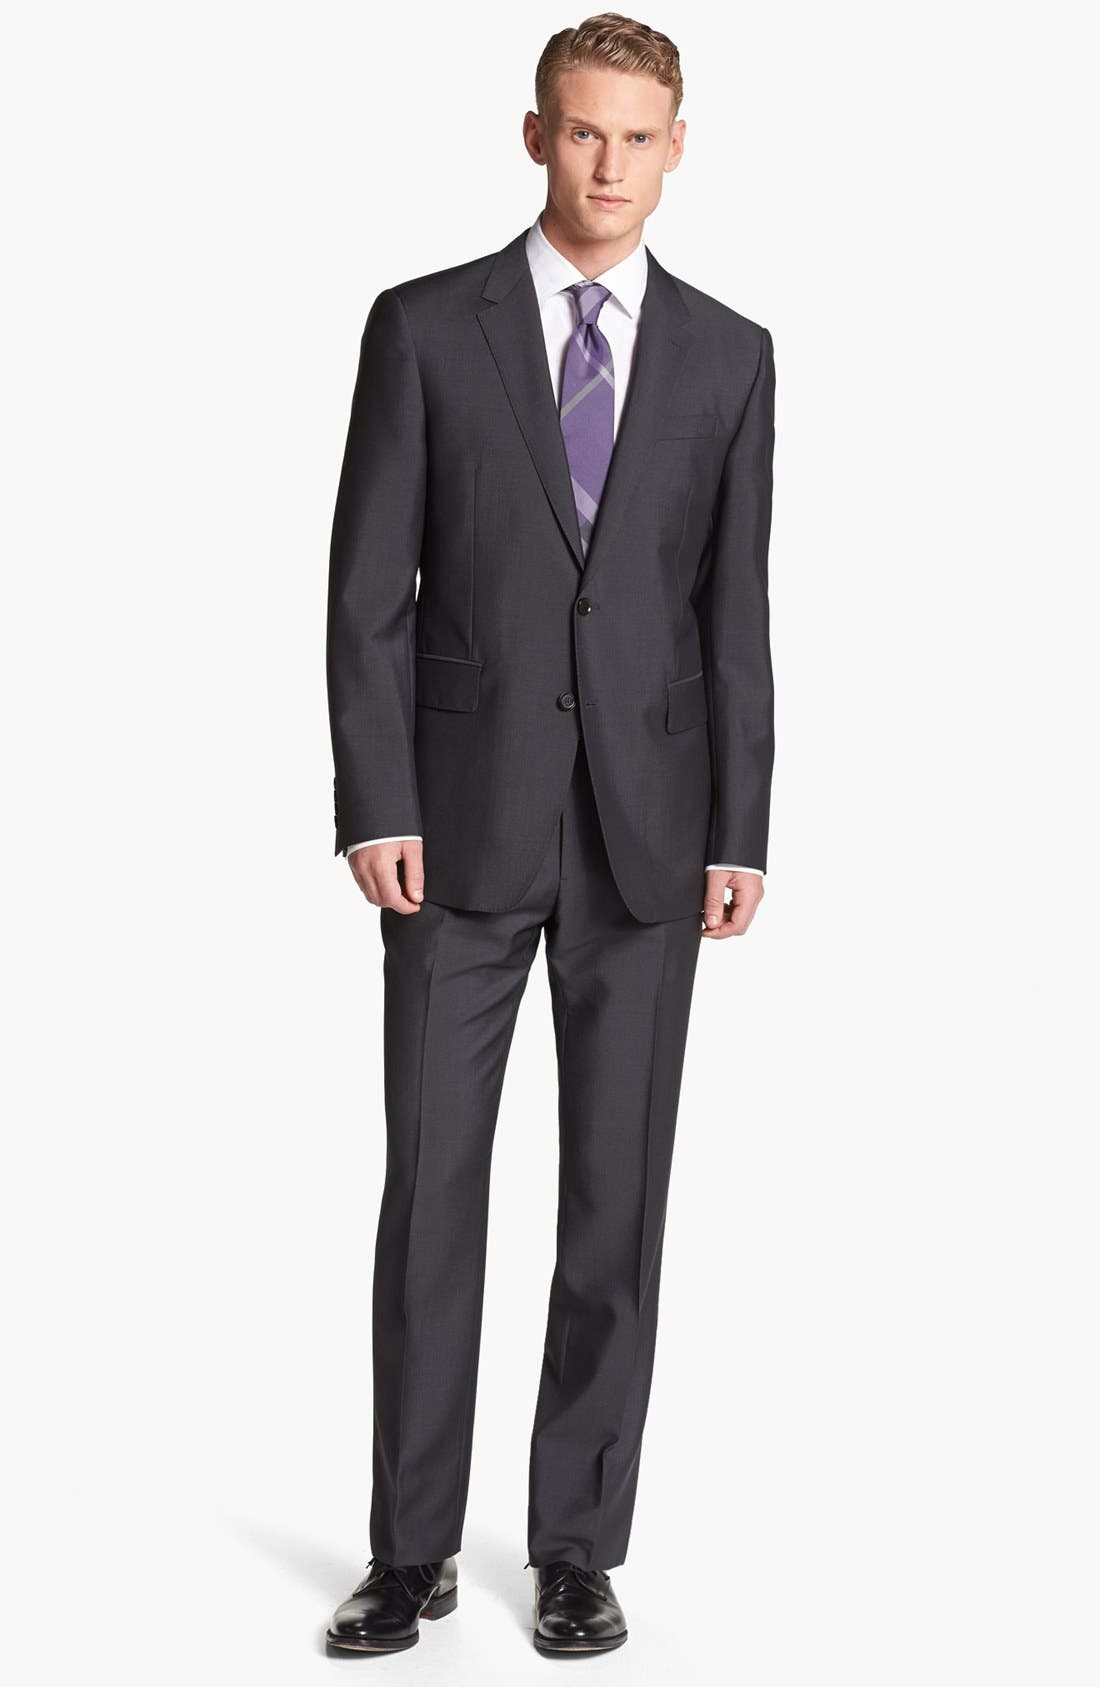 Main Image - Burberry London Trim Fit Charcoal Wool & Mohair Suit